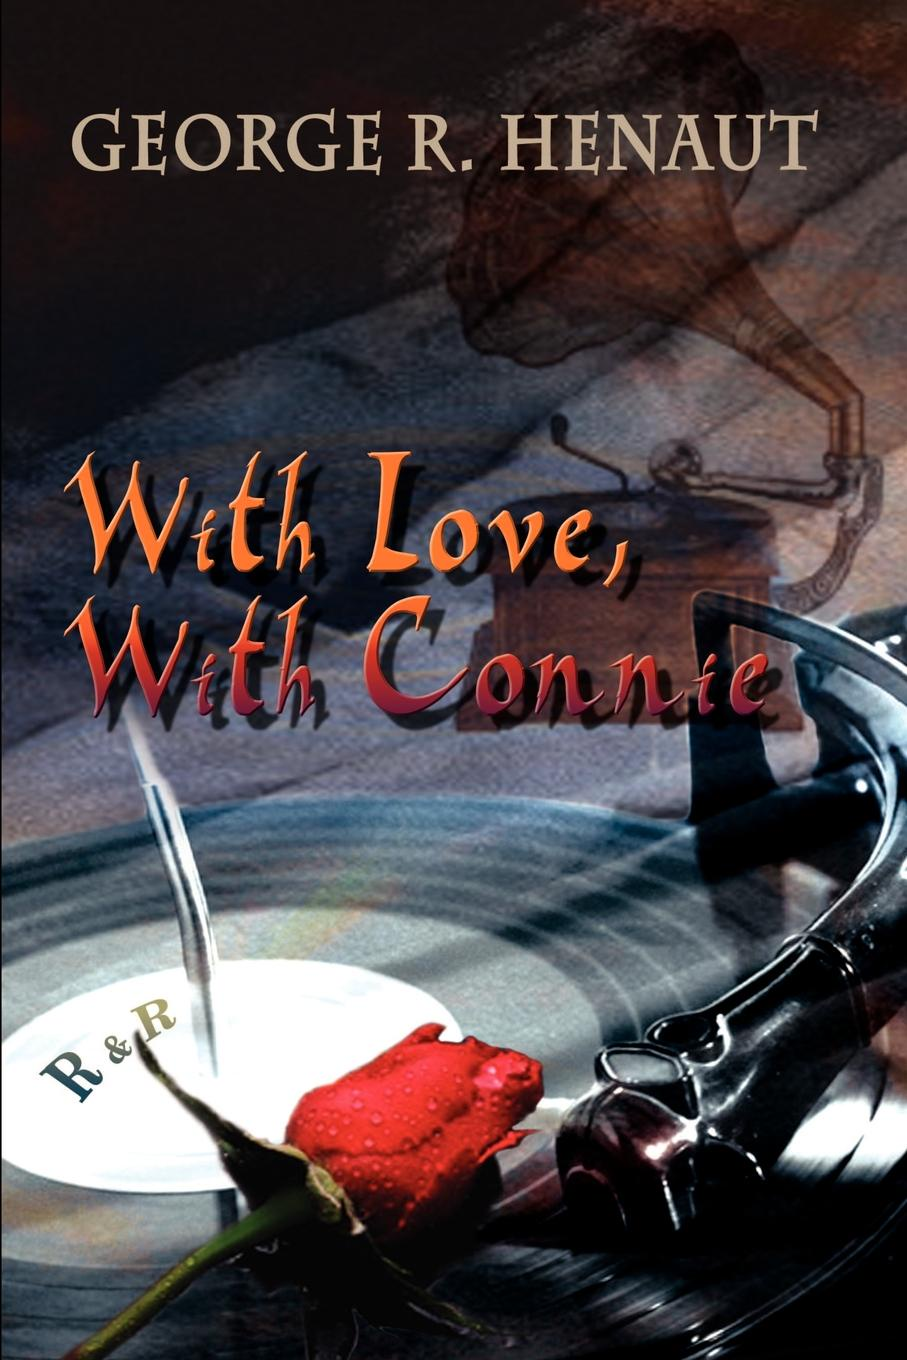 George R. Henaut With Love, Connie